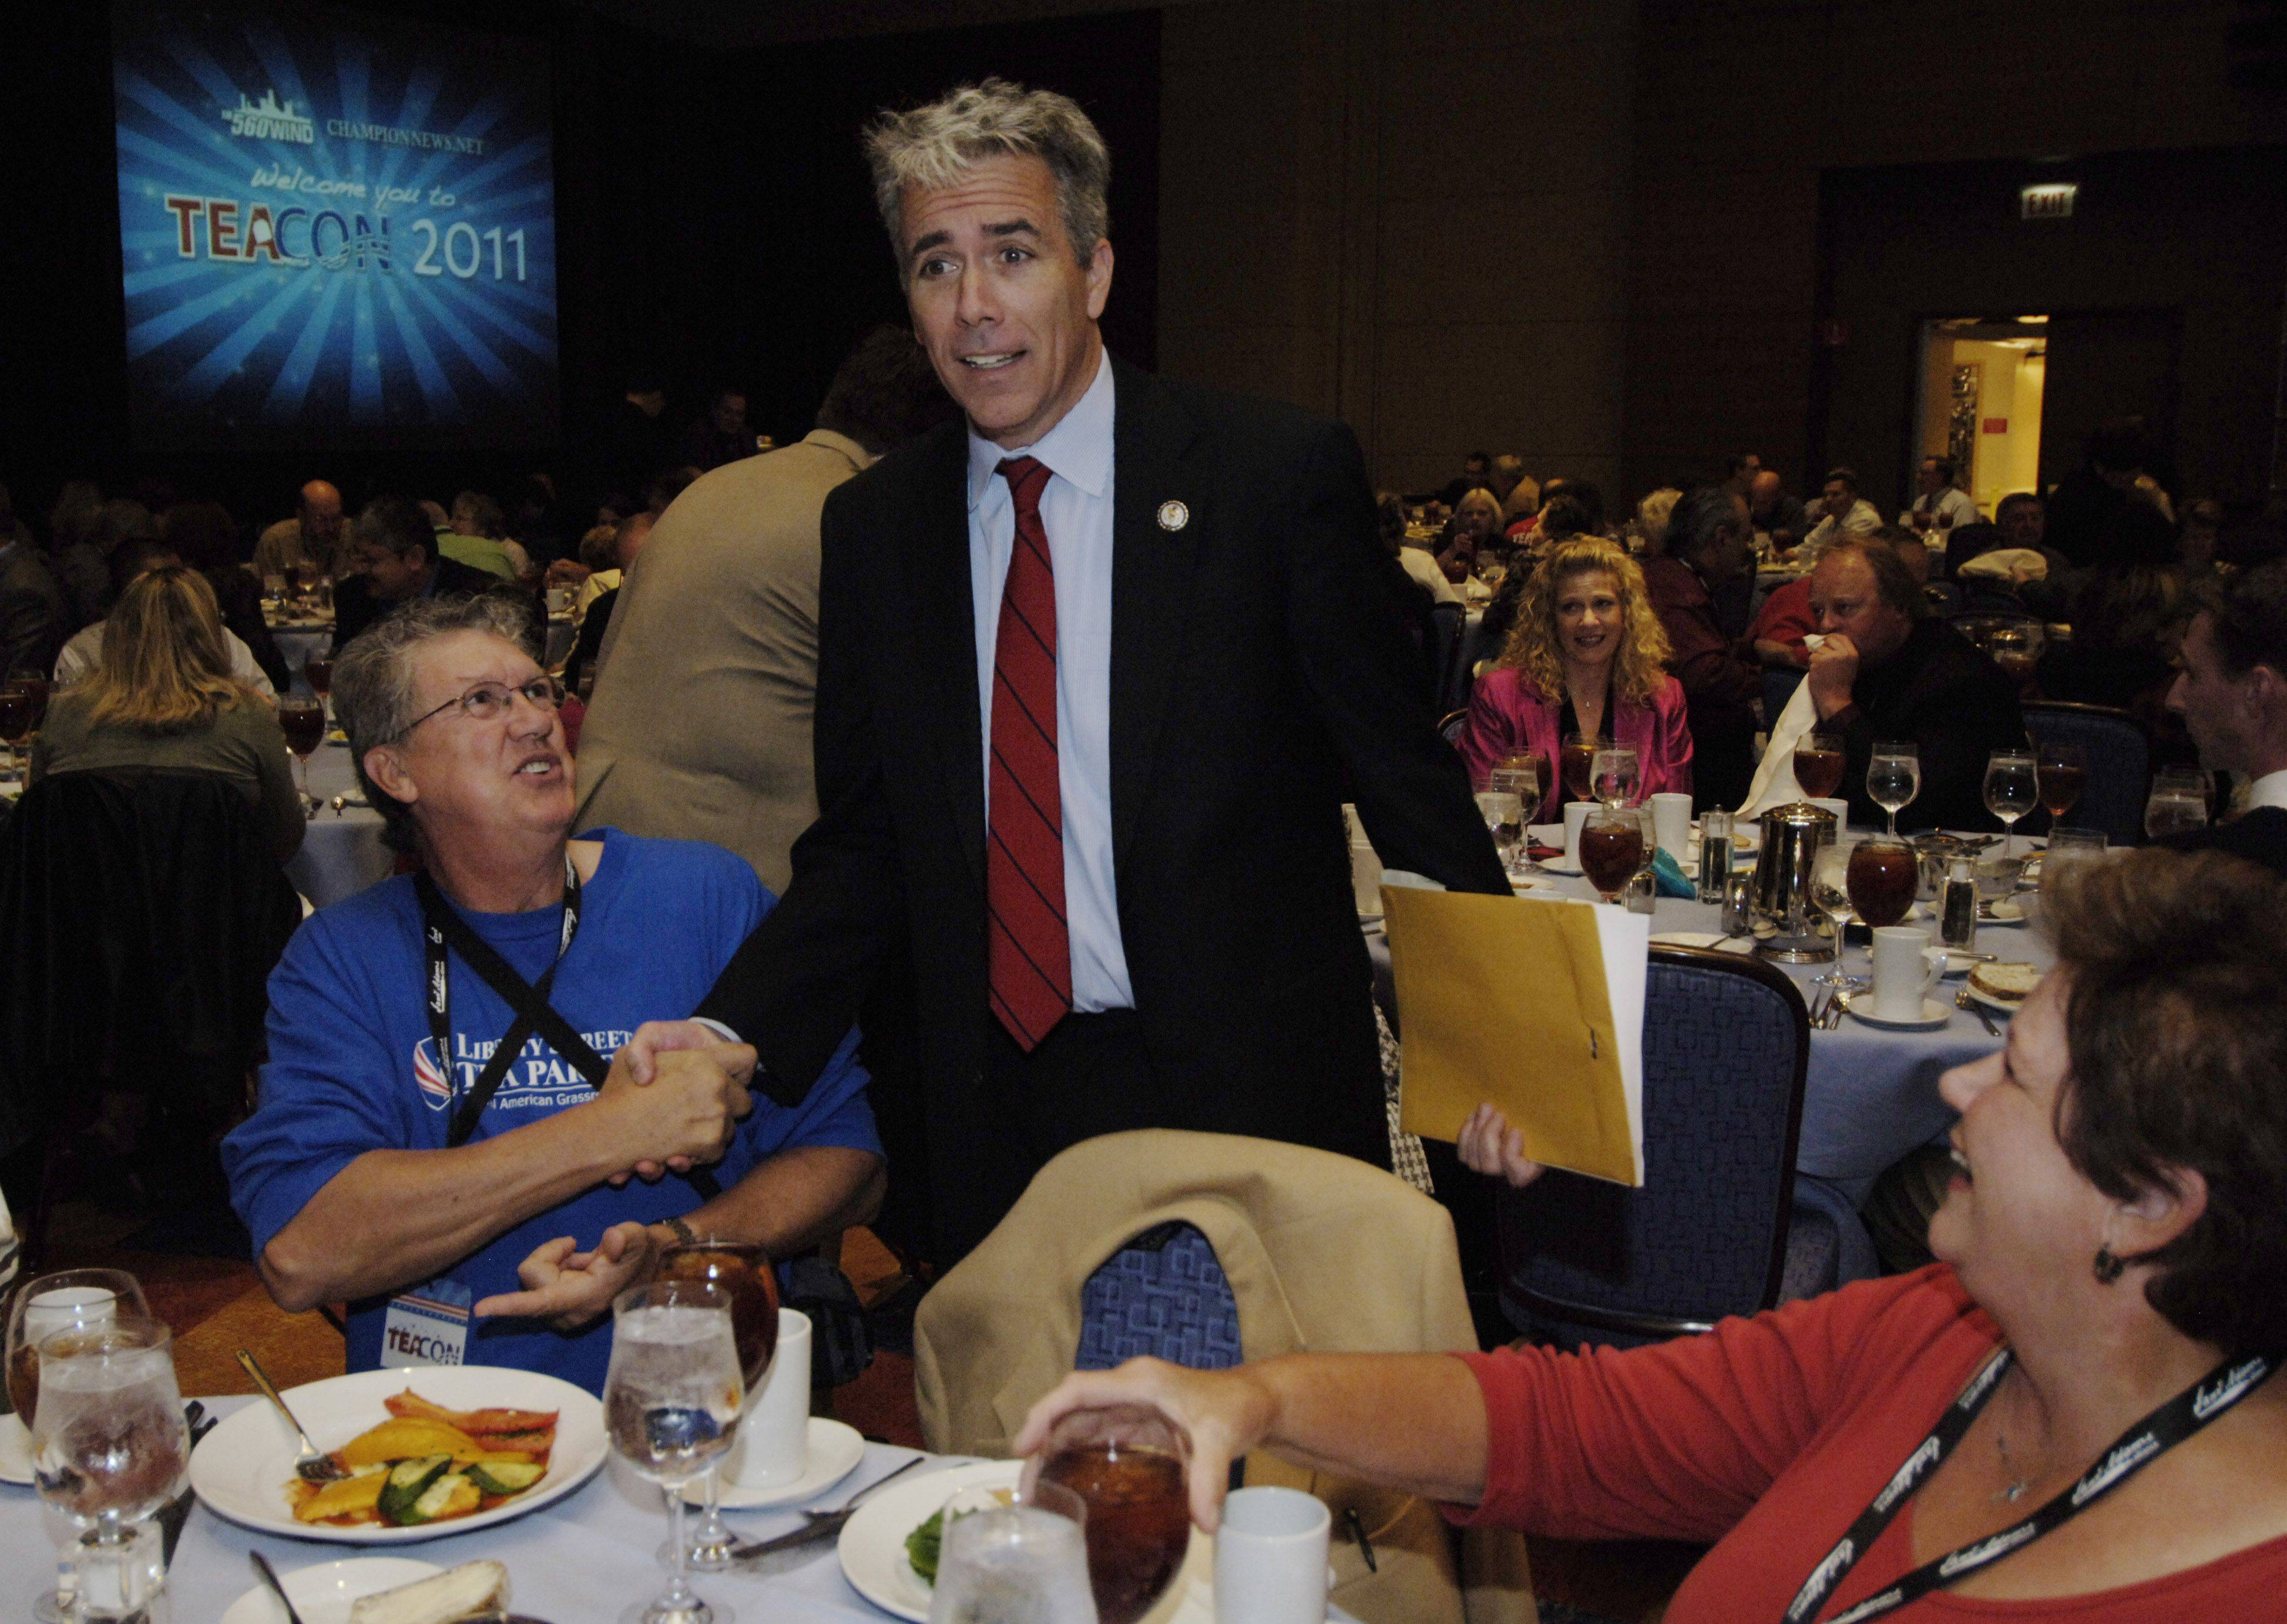 Congressman Joe Walsh is greeted by supporters, including Glen Rowe, left, of Wauconda, during TeaCon, the Midwest tea party convention at the Renaissance Hotel in Schaumburg Saturday.